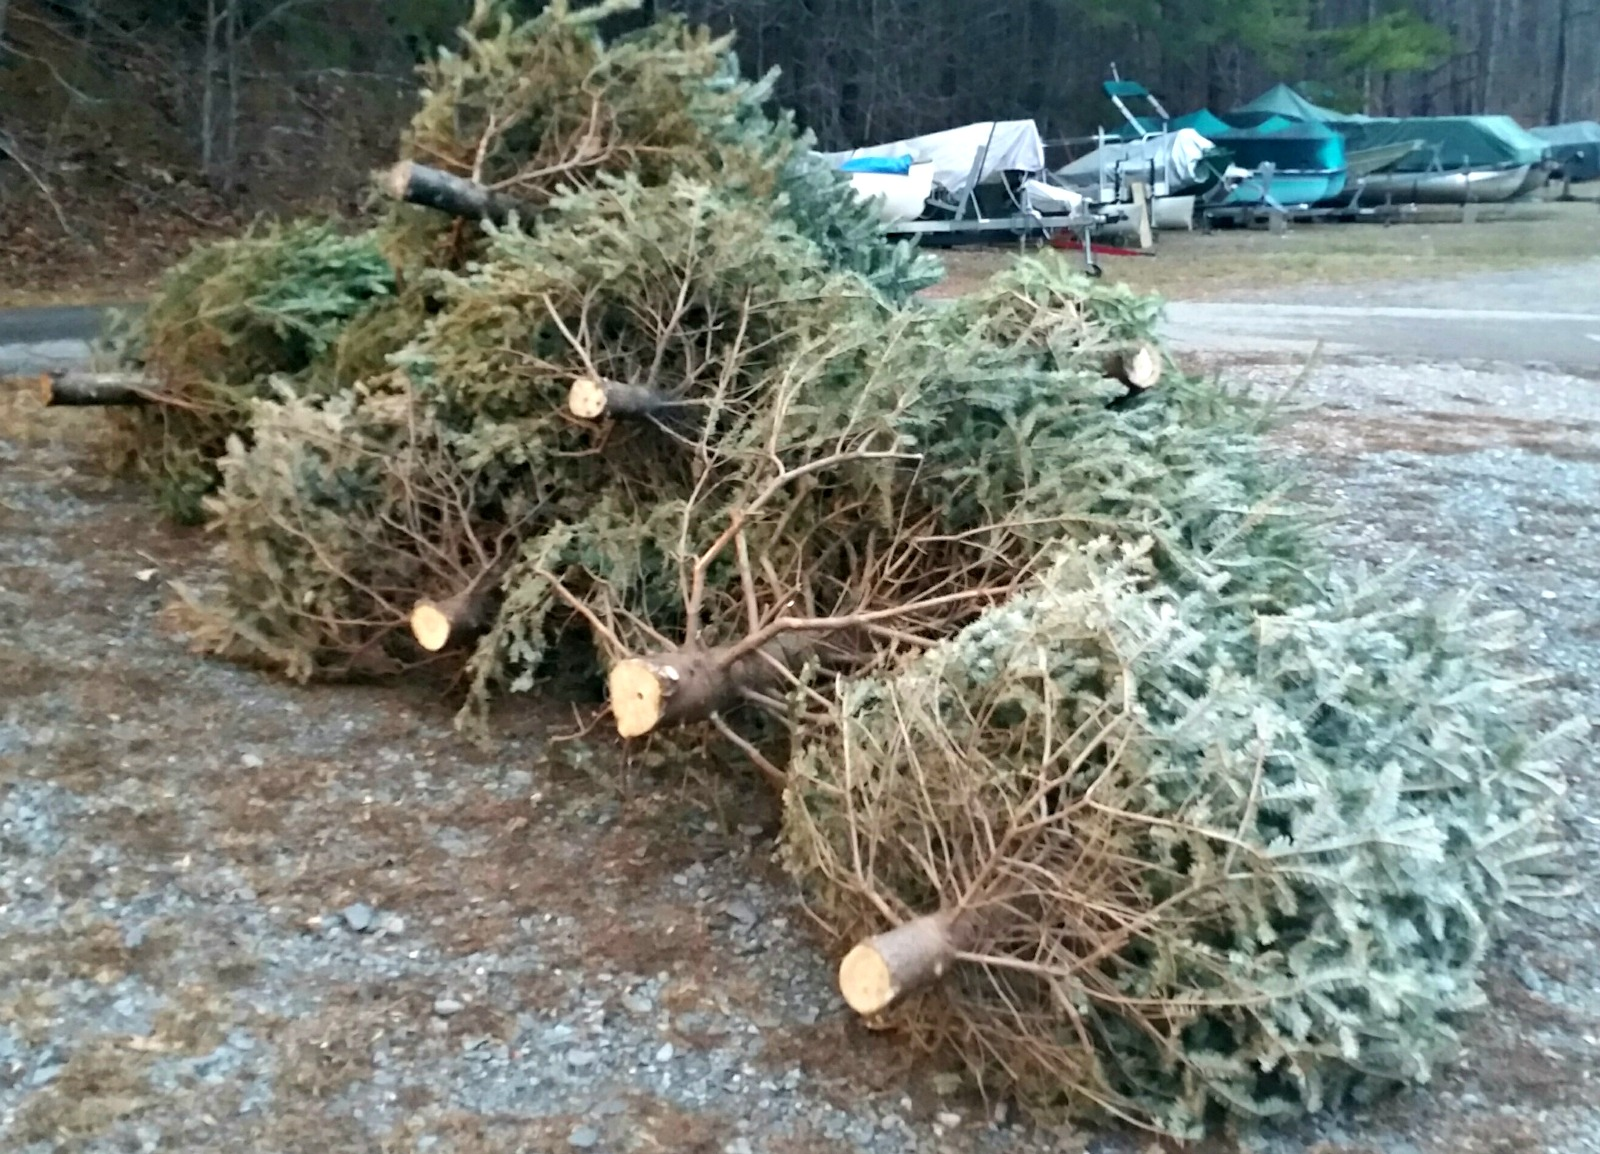 January 6, 2017 - Christmas trees left at the boat storage area